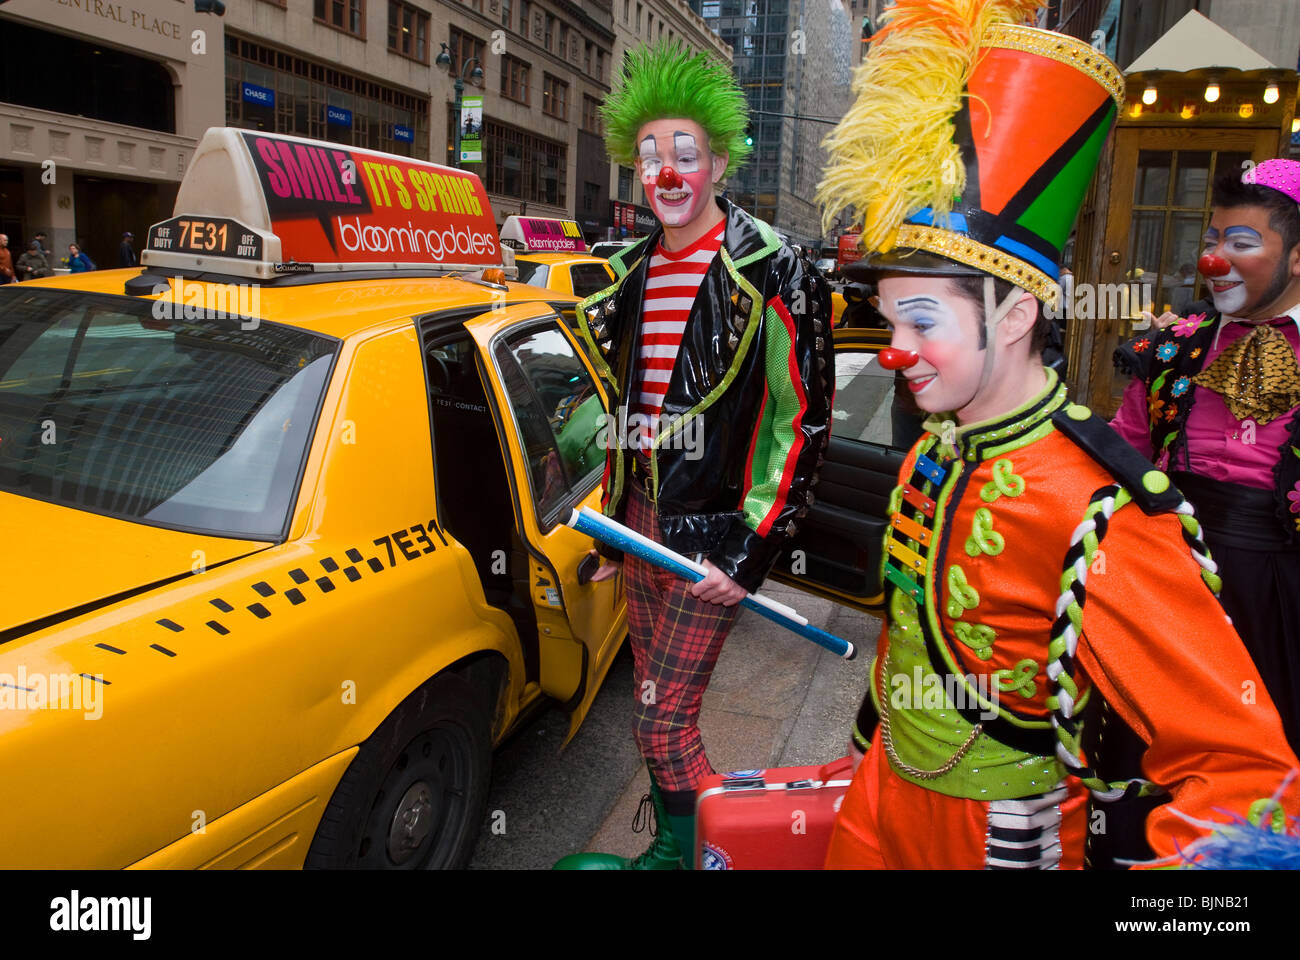 Clowns from the Ringling Bros. Barnum & Bailey Circus leave via taxicab from Grand Central Terminal in New York - Stock Image